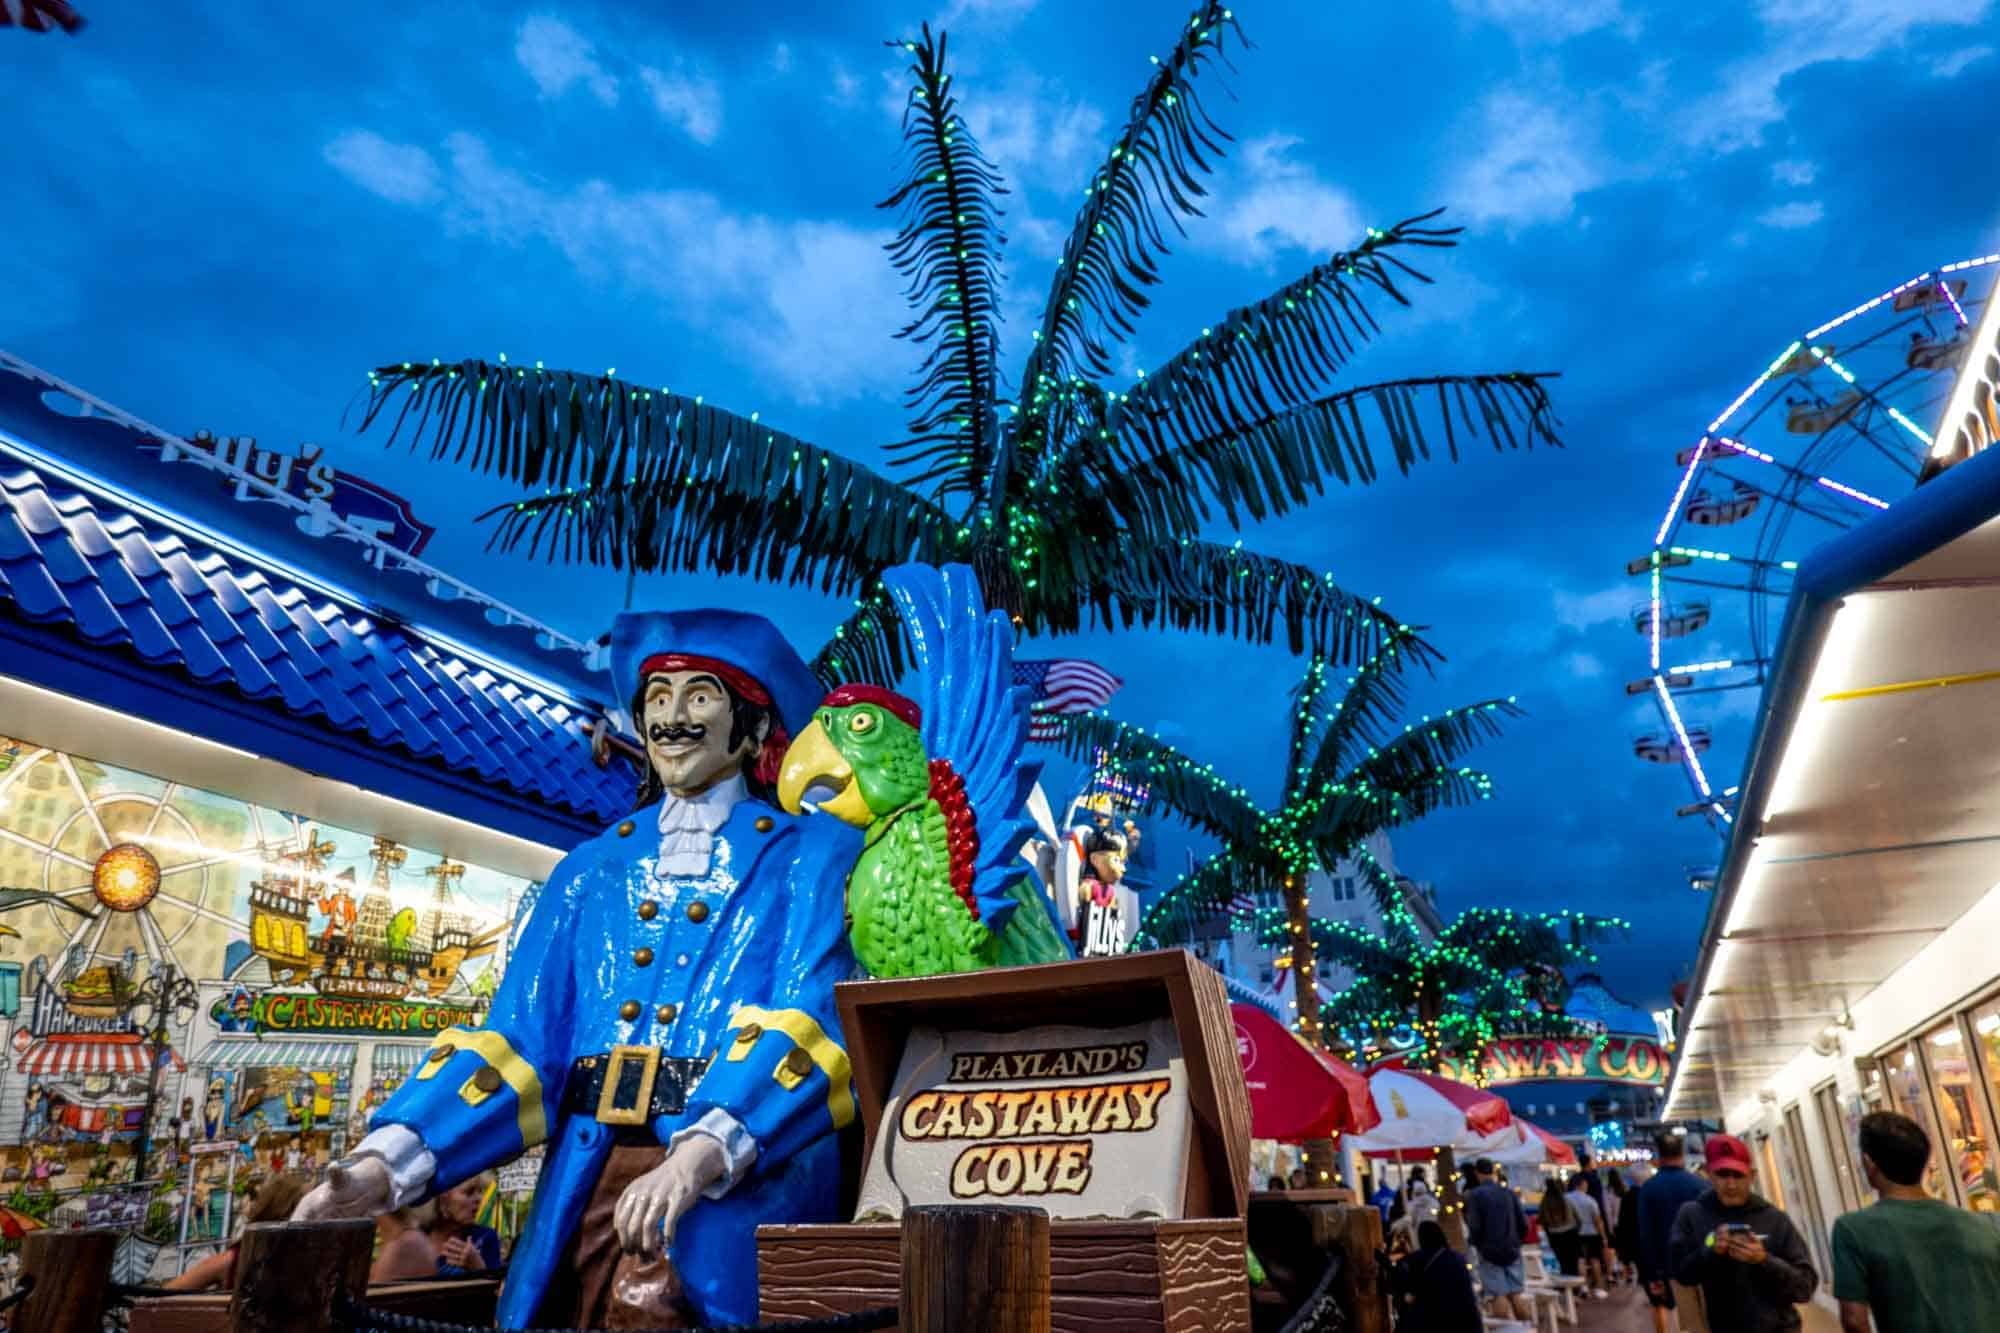 Pirate and parrot at Playland's Castaway Cove entrance